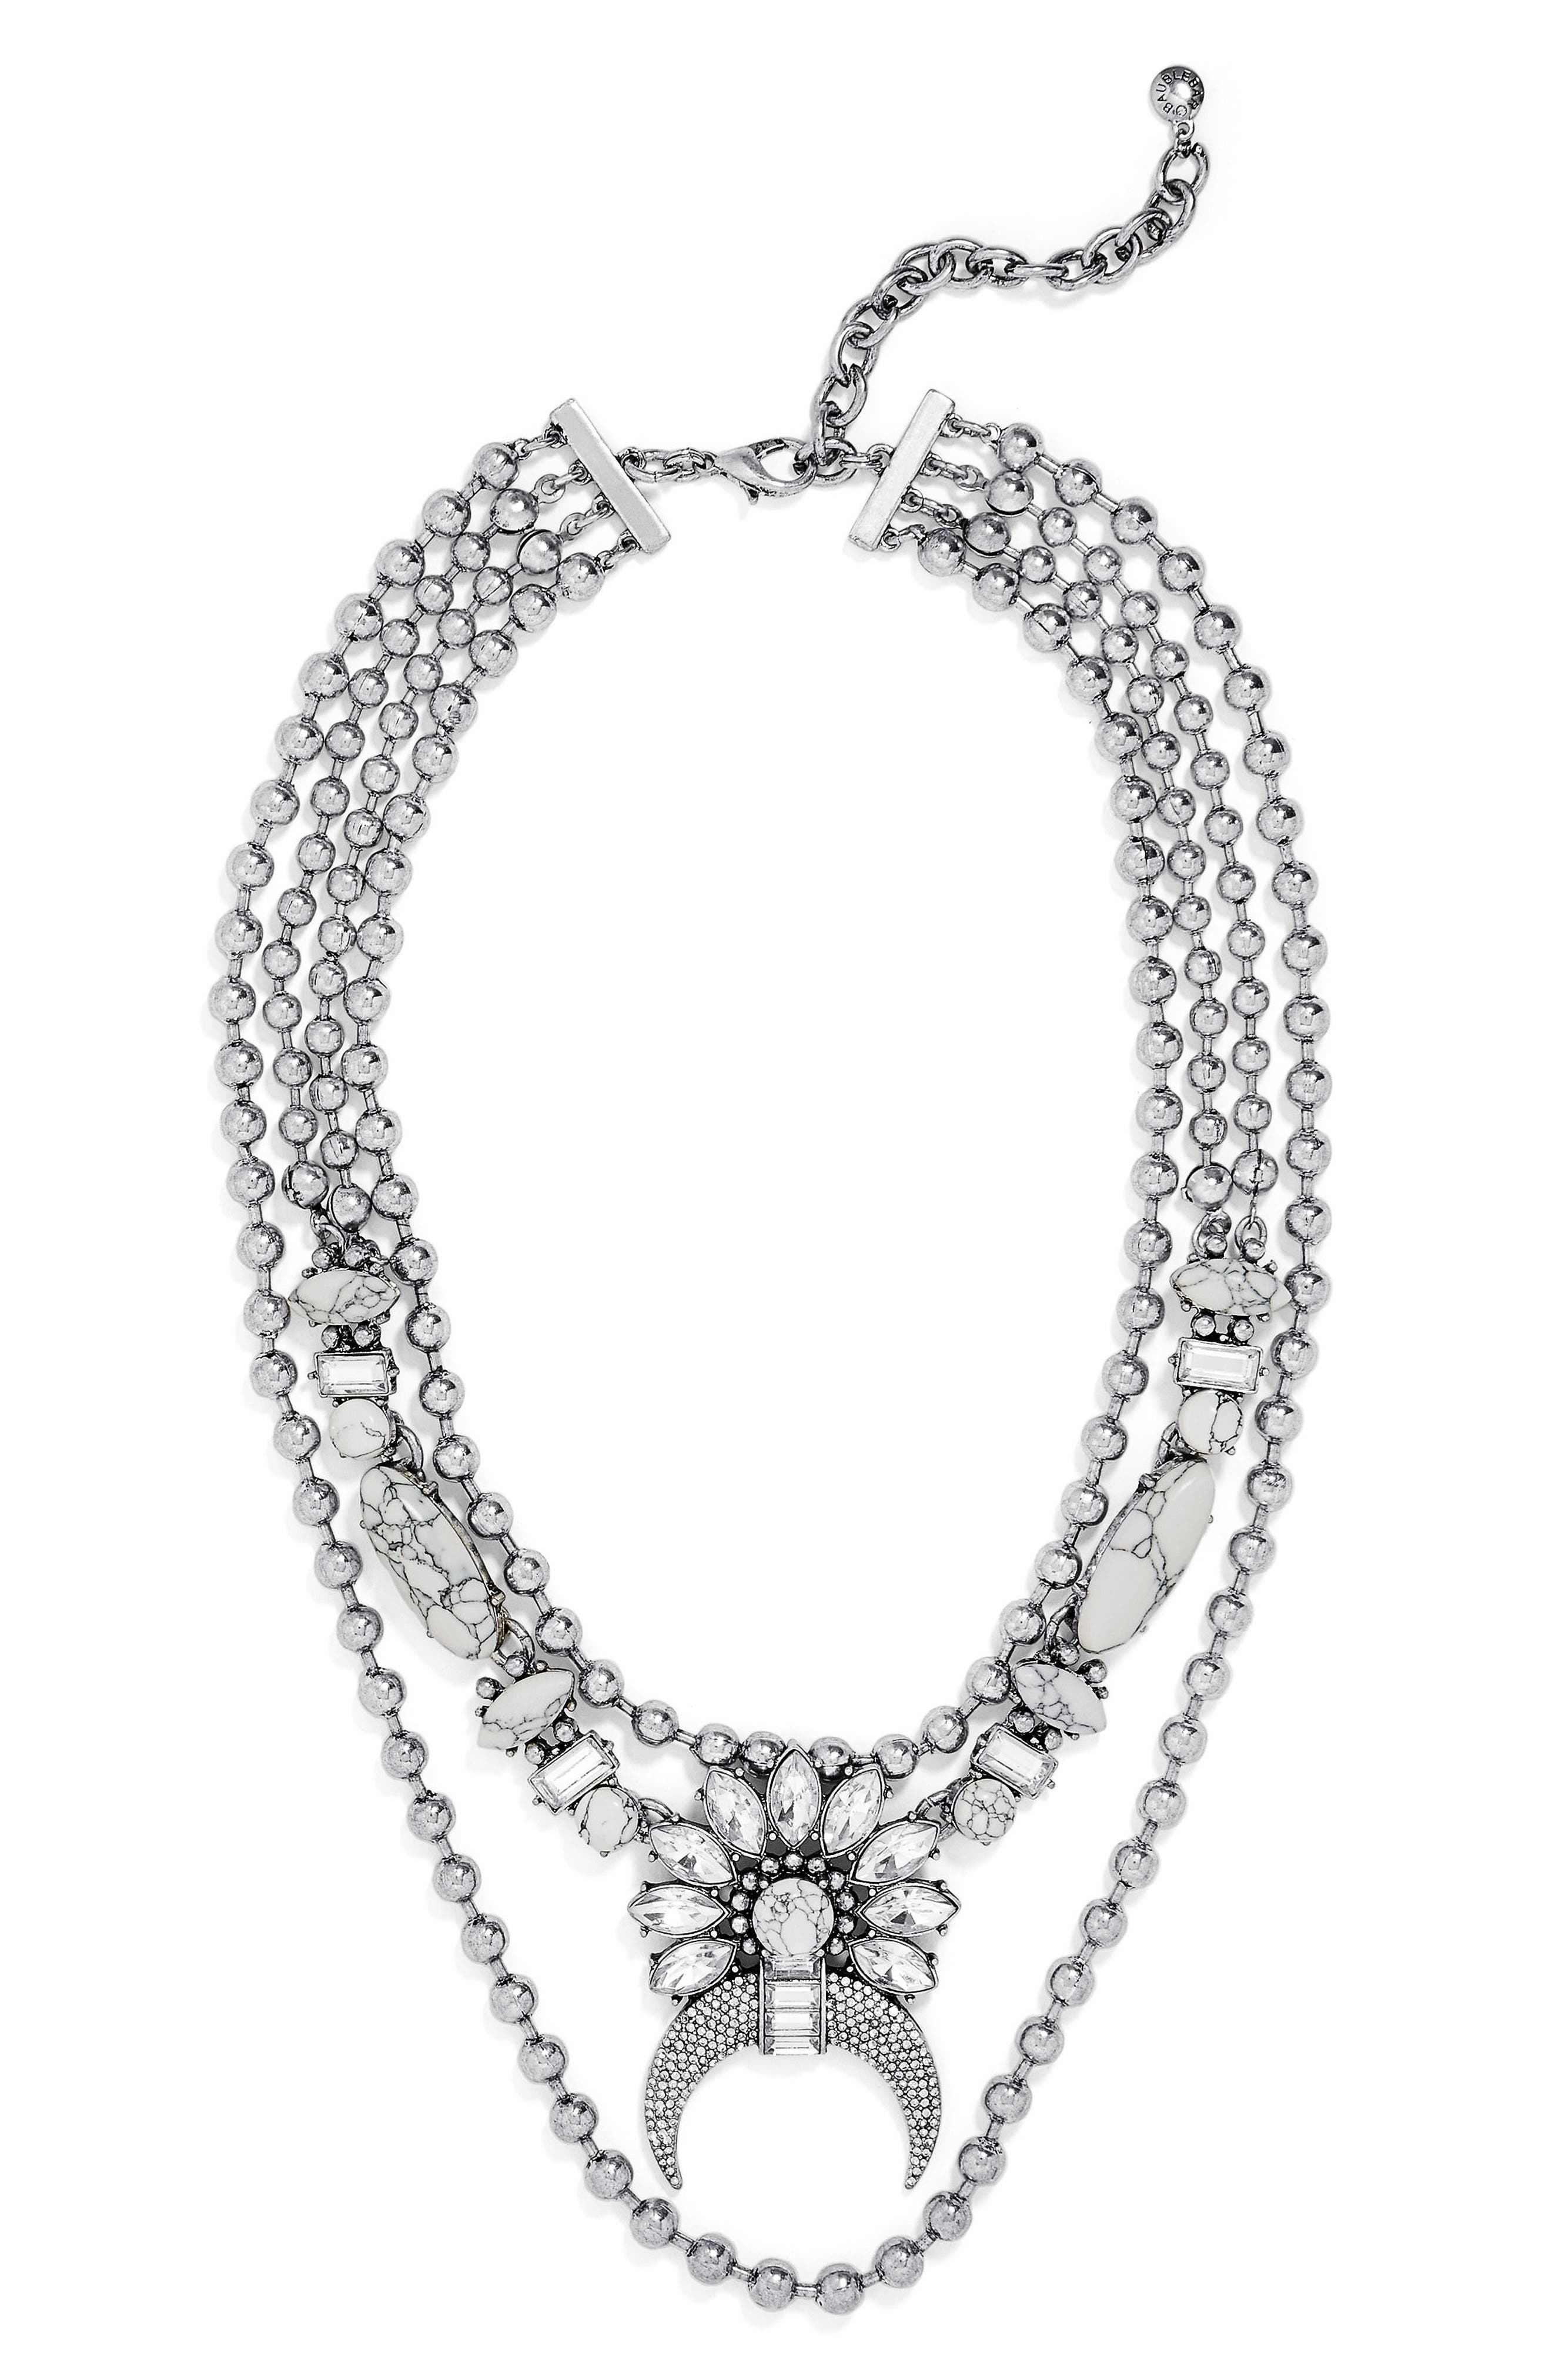 Baublebar Isadora Bib Necklace